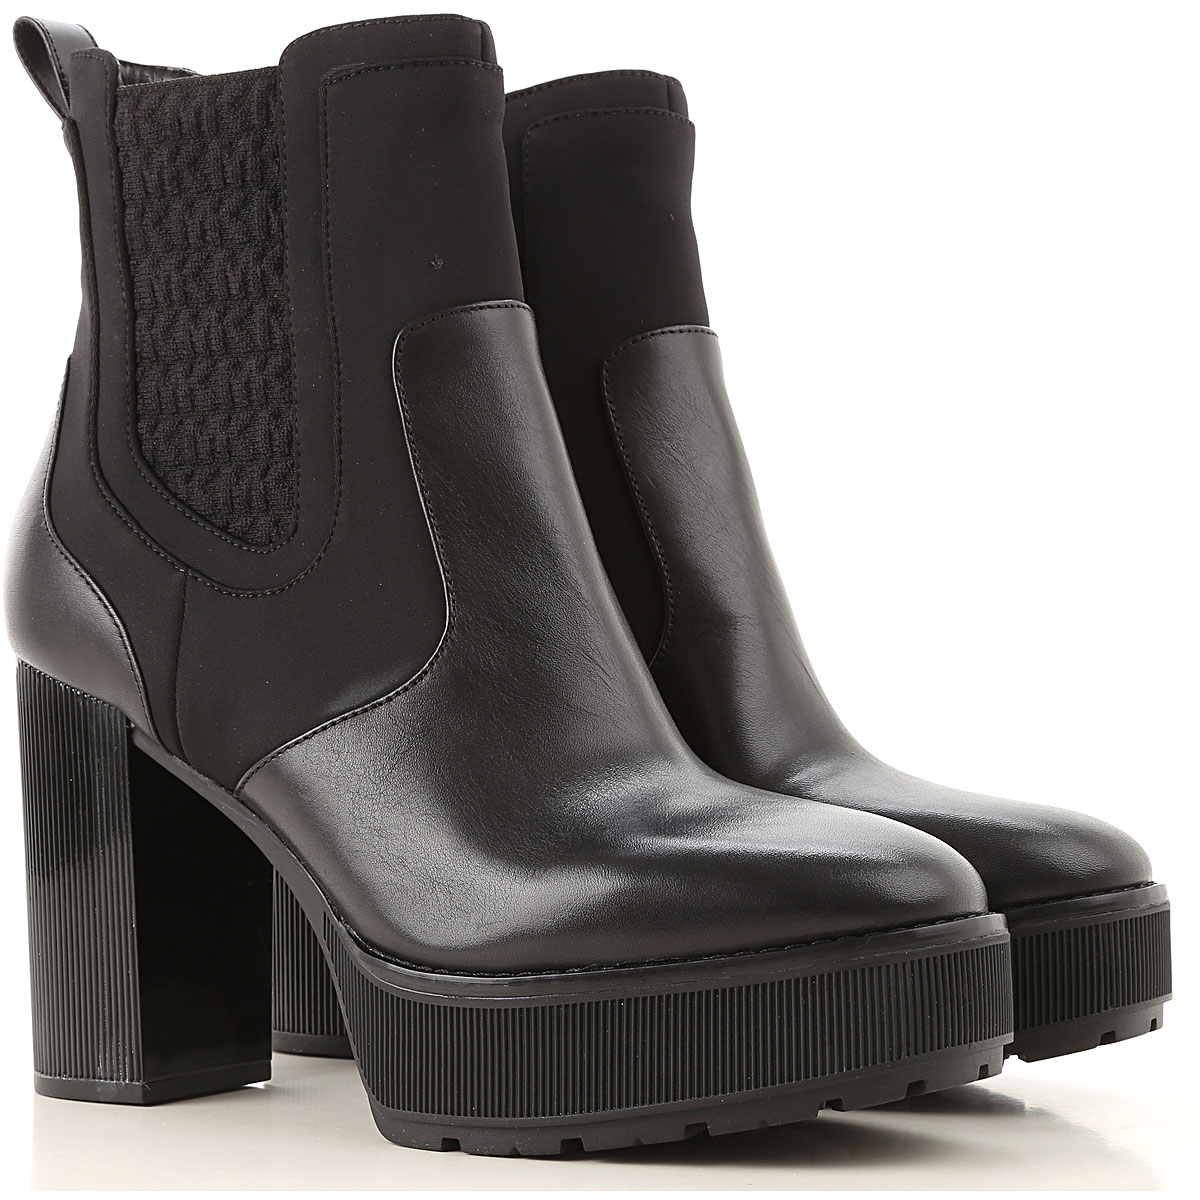 Michael Kors Boots for Women, Booties On Sale, Black, Leather, 2019, 6 8 9 9.5